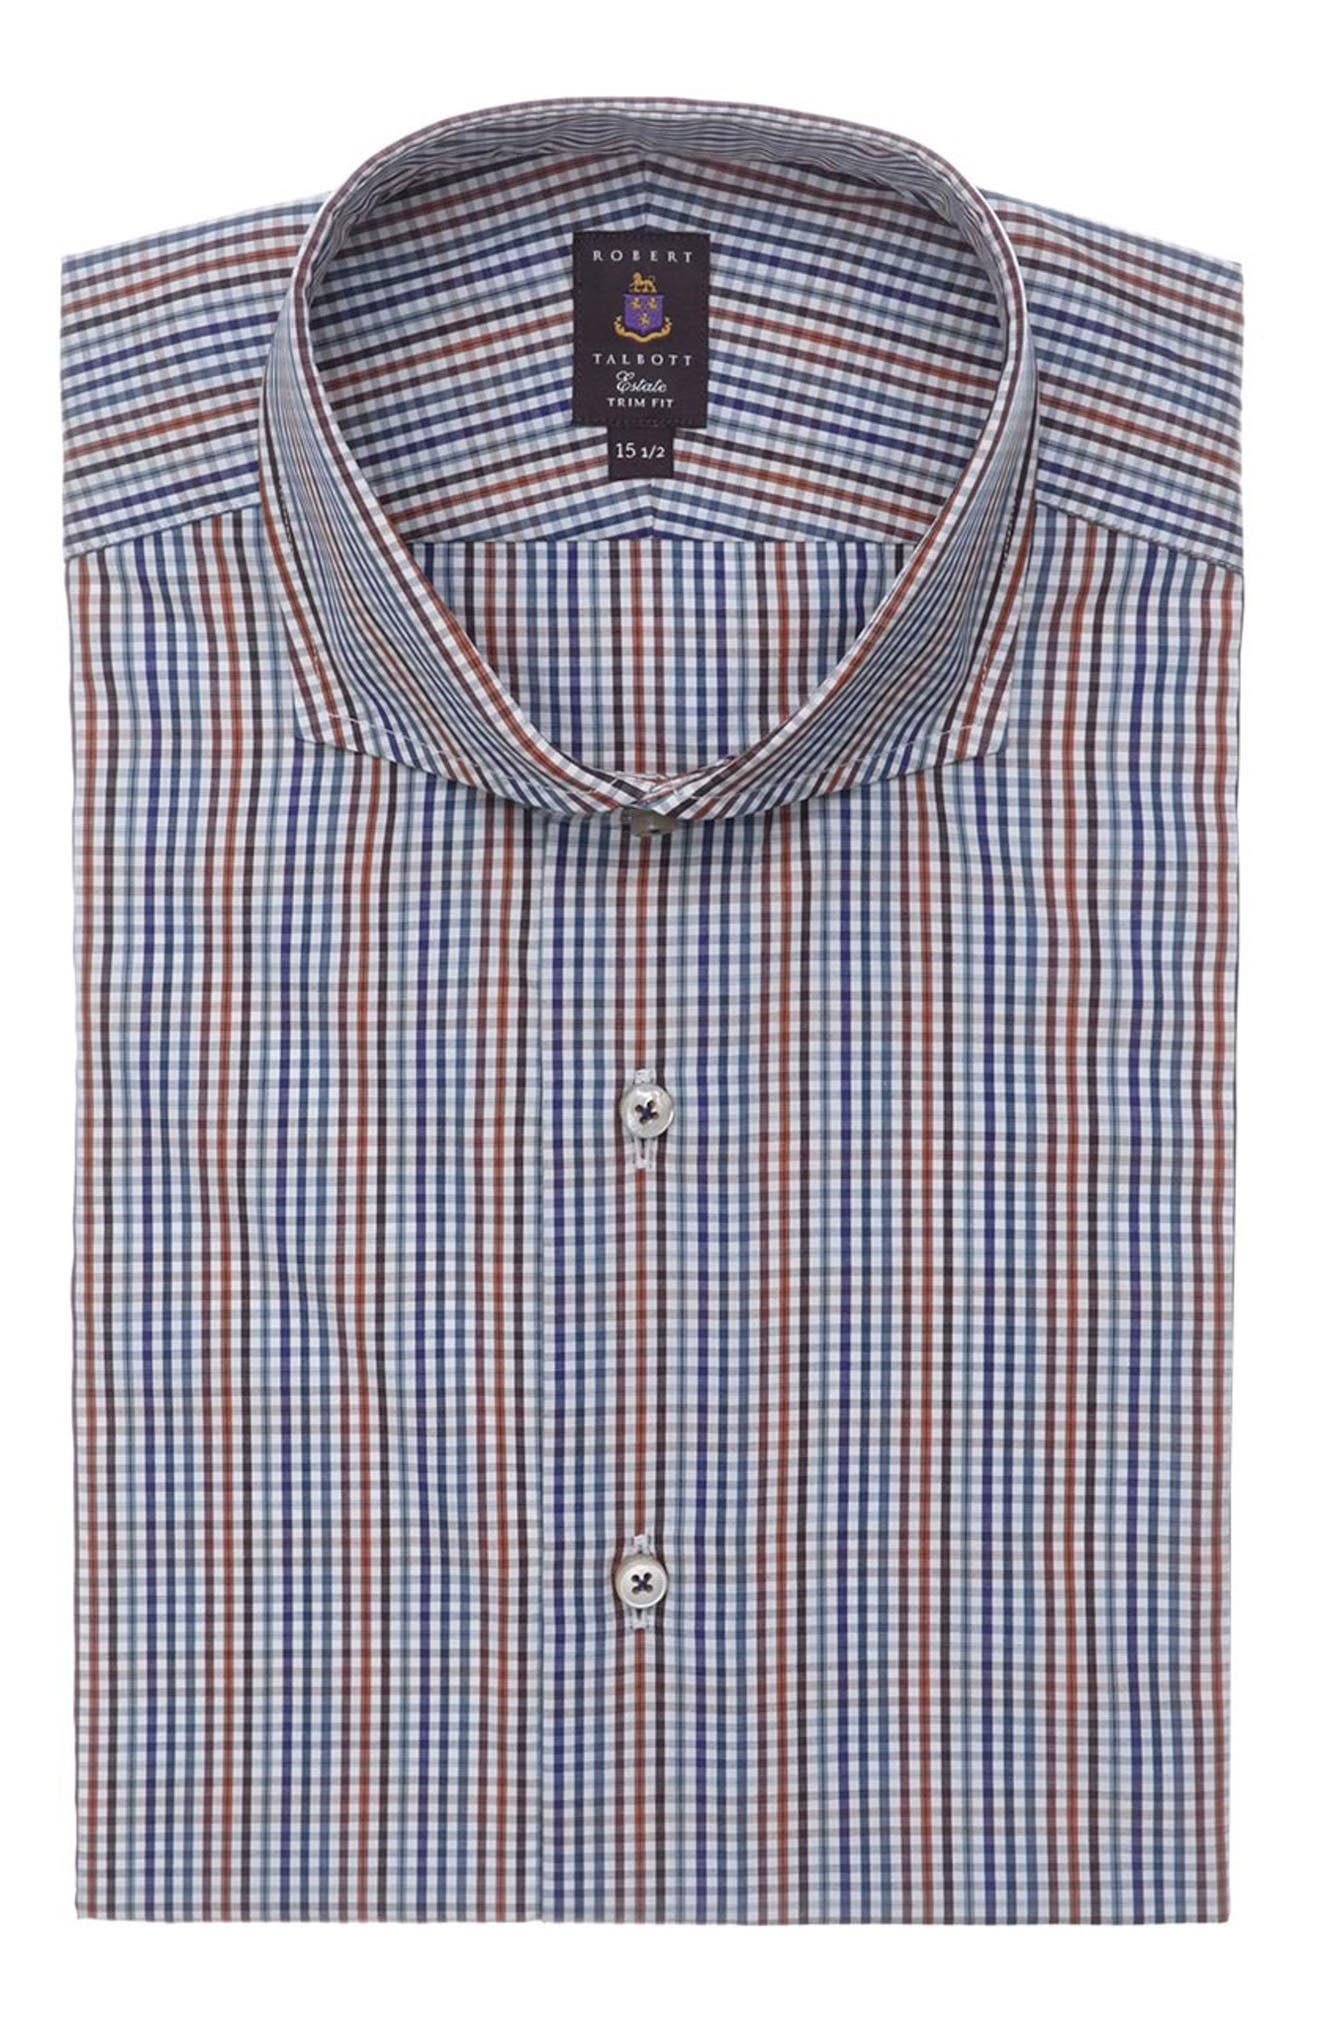 Tailored Fit Check Dress Shirt,                         Main,                         color, 405